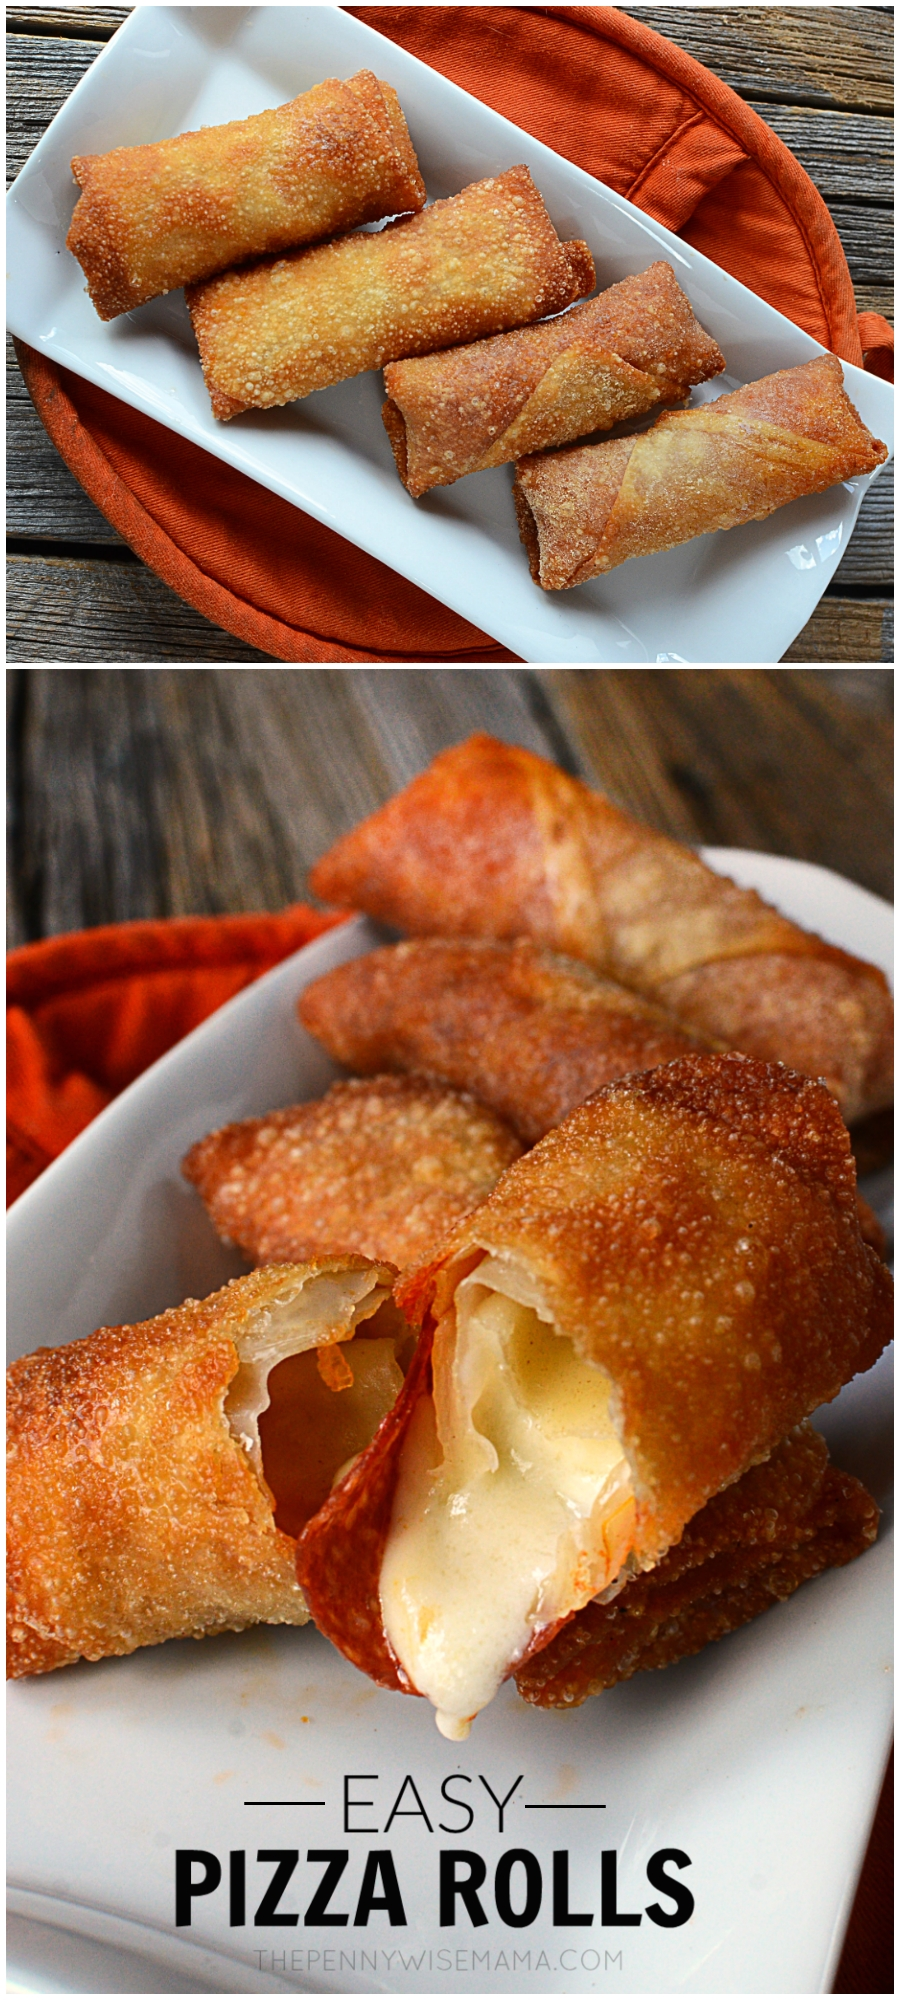 10 Lovely Egg Roll Wrapper Recipe Ideas easy homemade pizza rolls recipe delicious appetizers pizza 2021